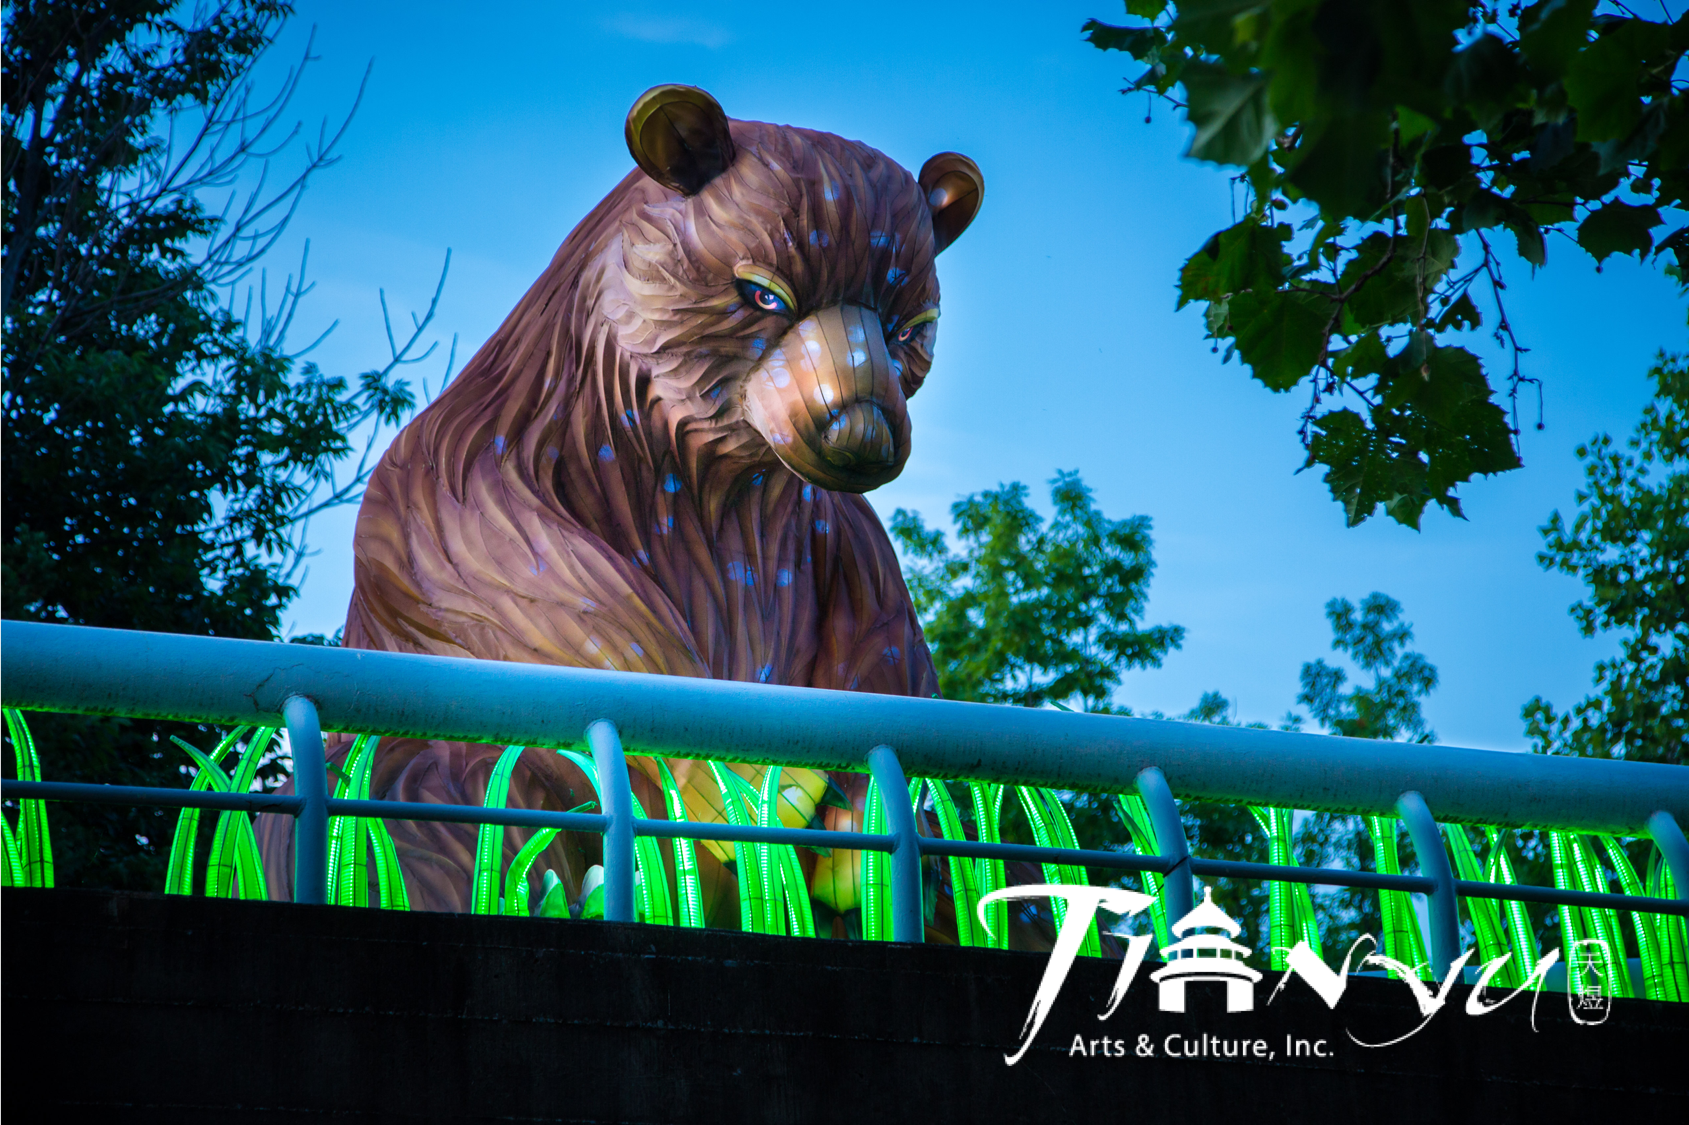 Giant Chinese lantern bear sits in grass.